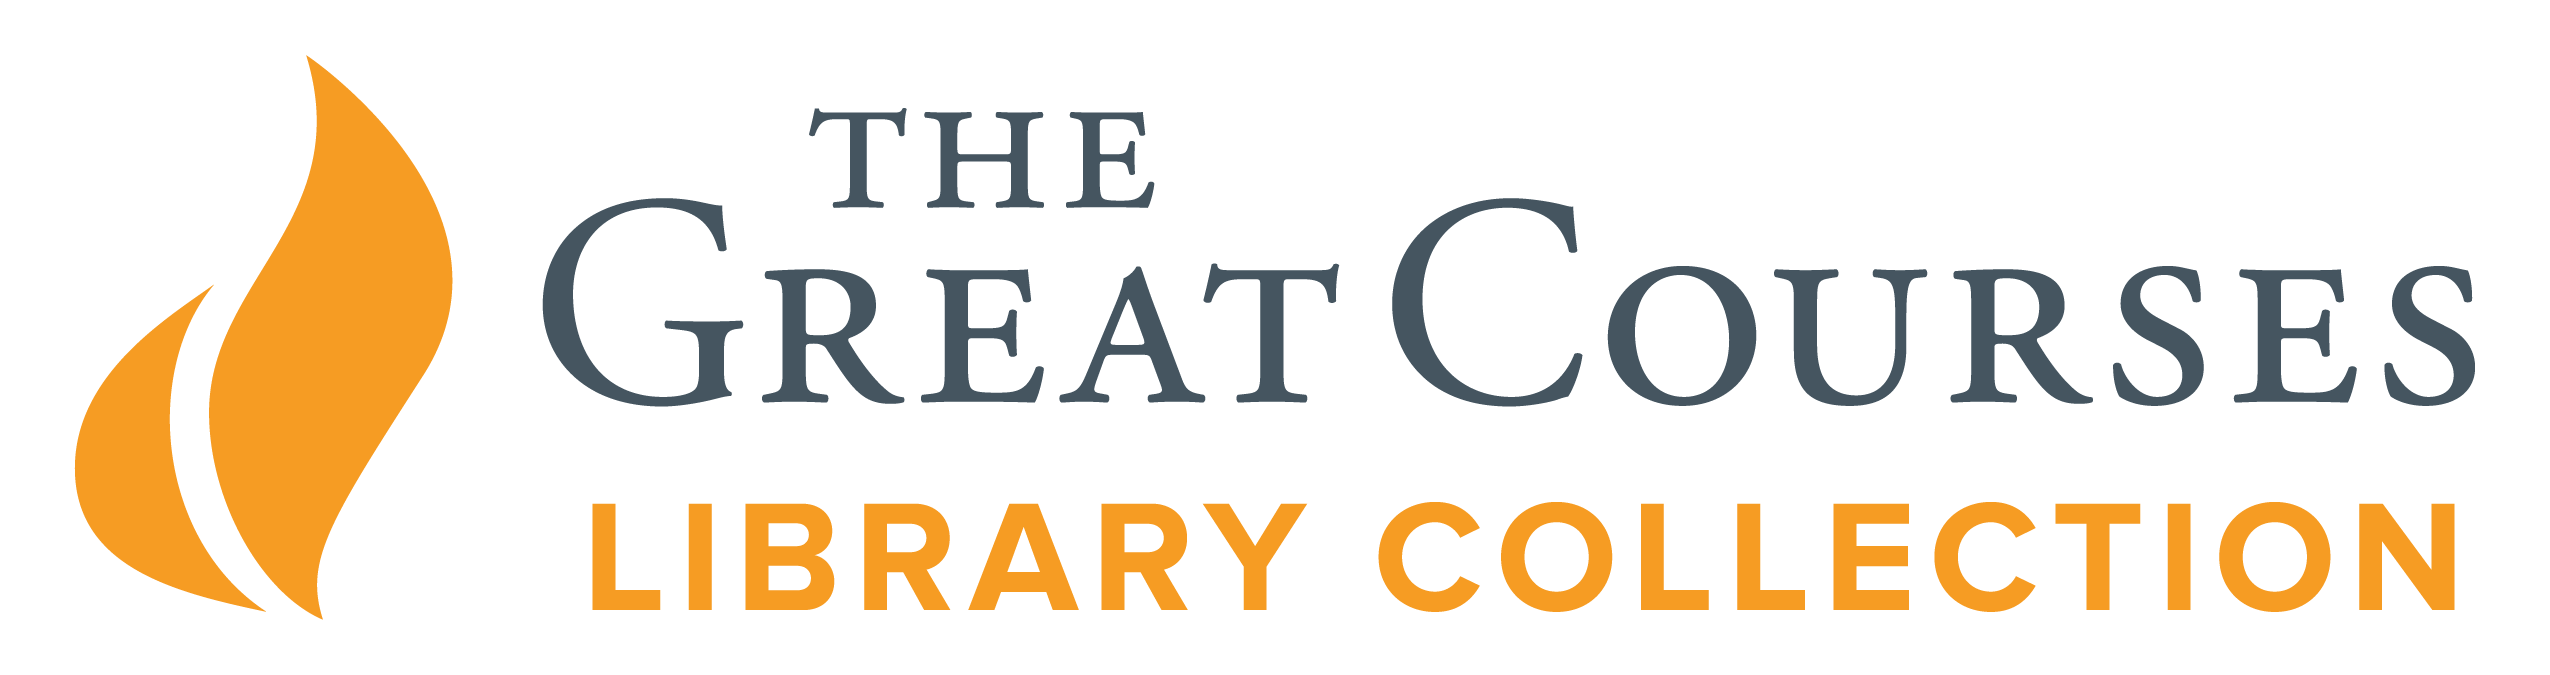 TGC_LibraryCollection_Color.png